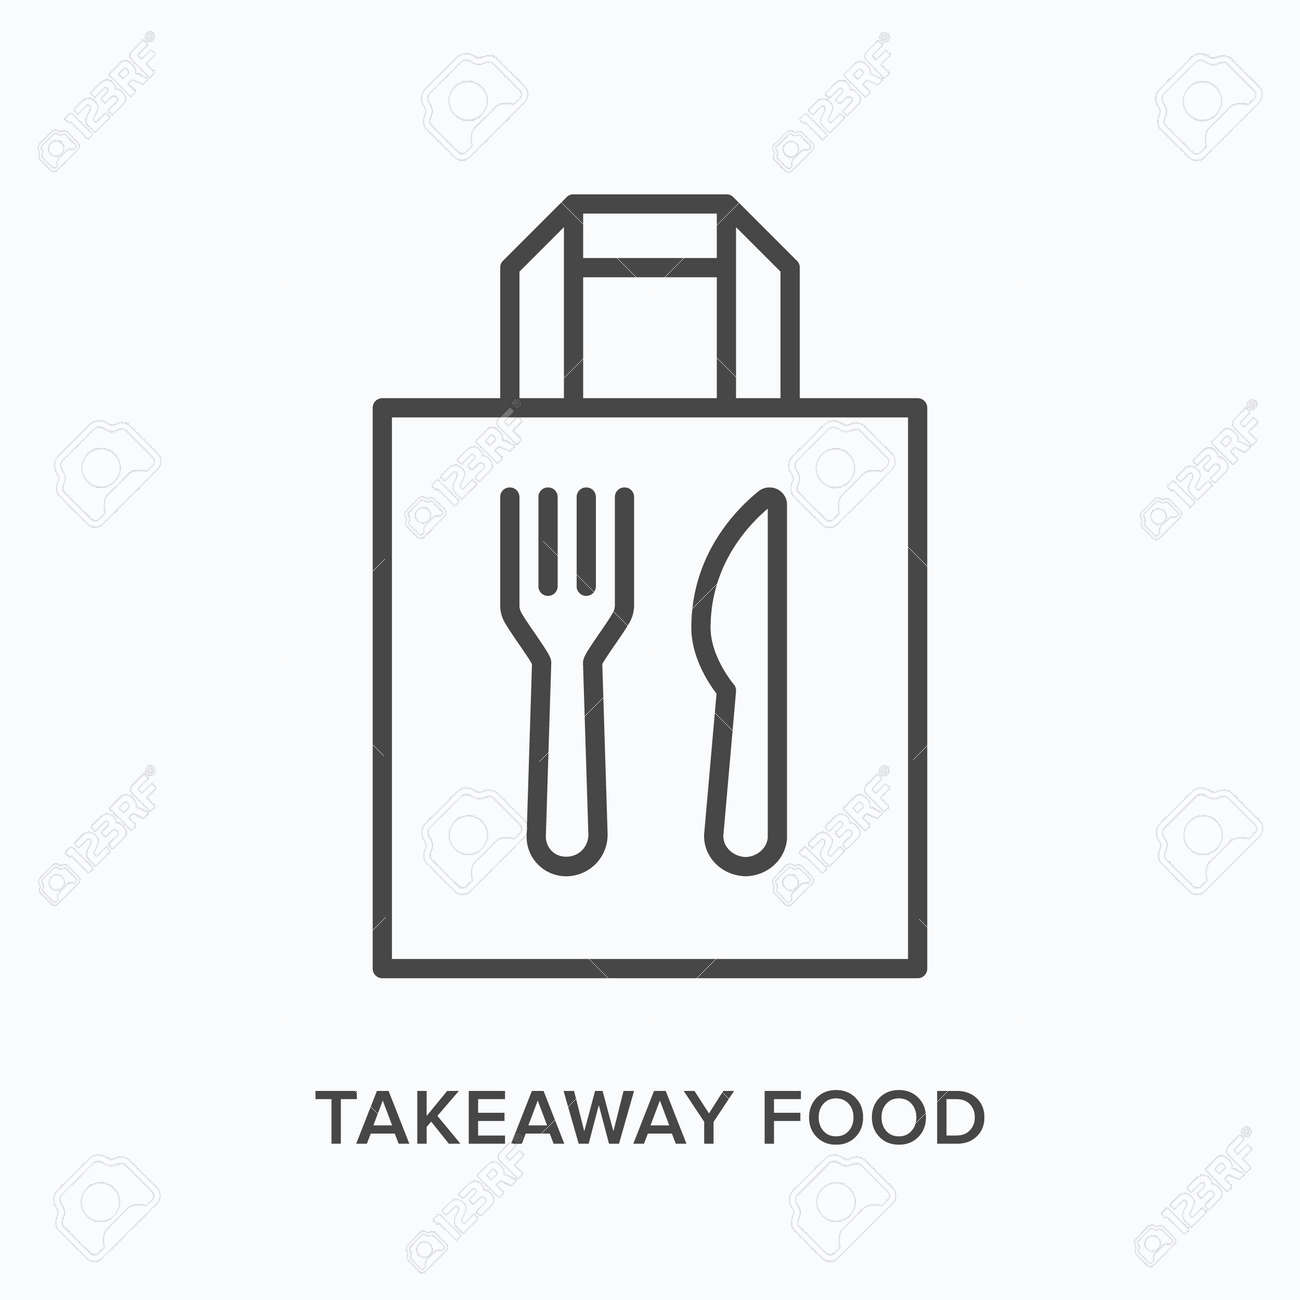 Ready food delivery line icon. Vector outline illustration of takeaway lunch service. Daily meal in papr bag with fork and knife pictorgam - 163657257